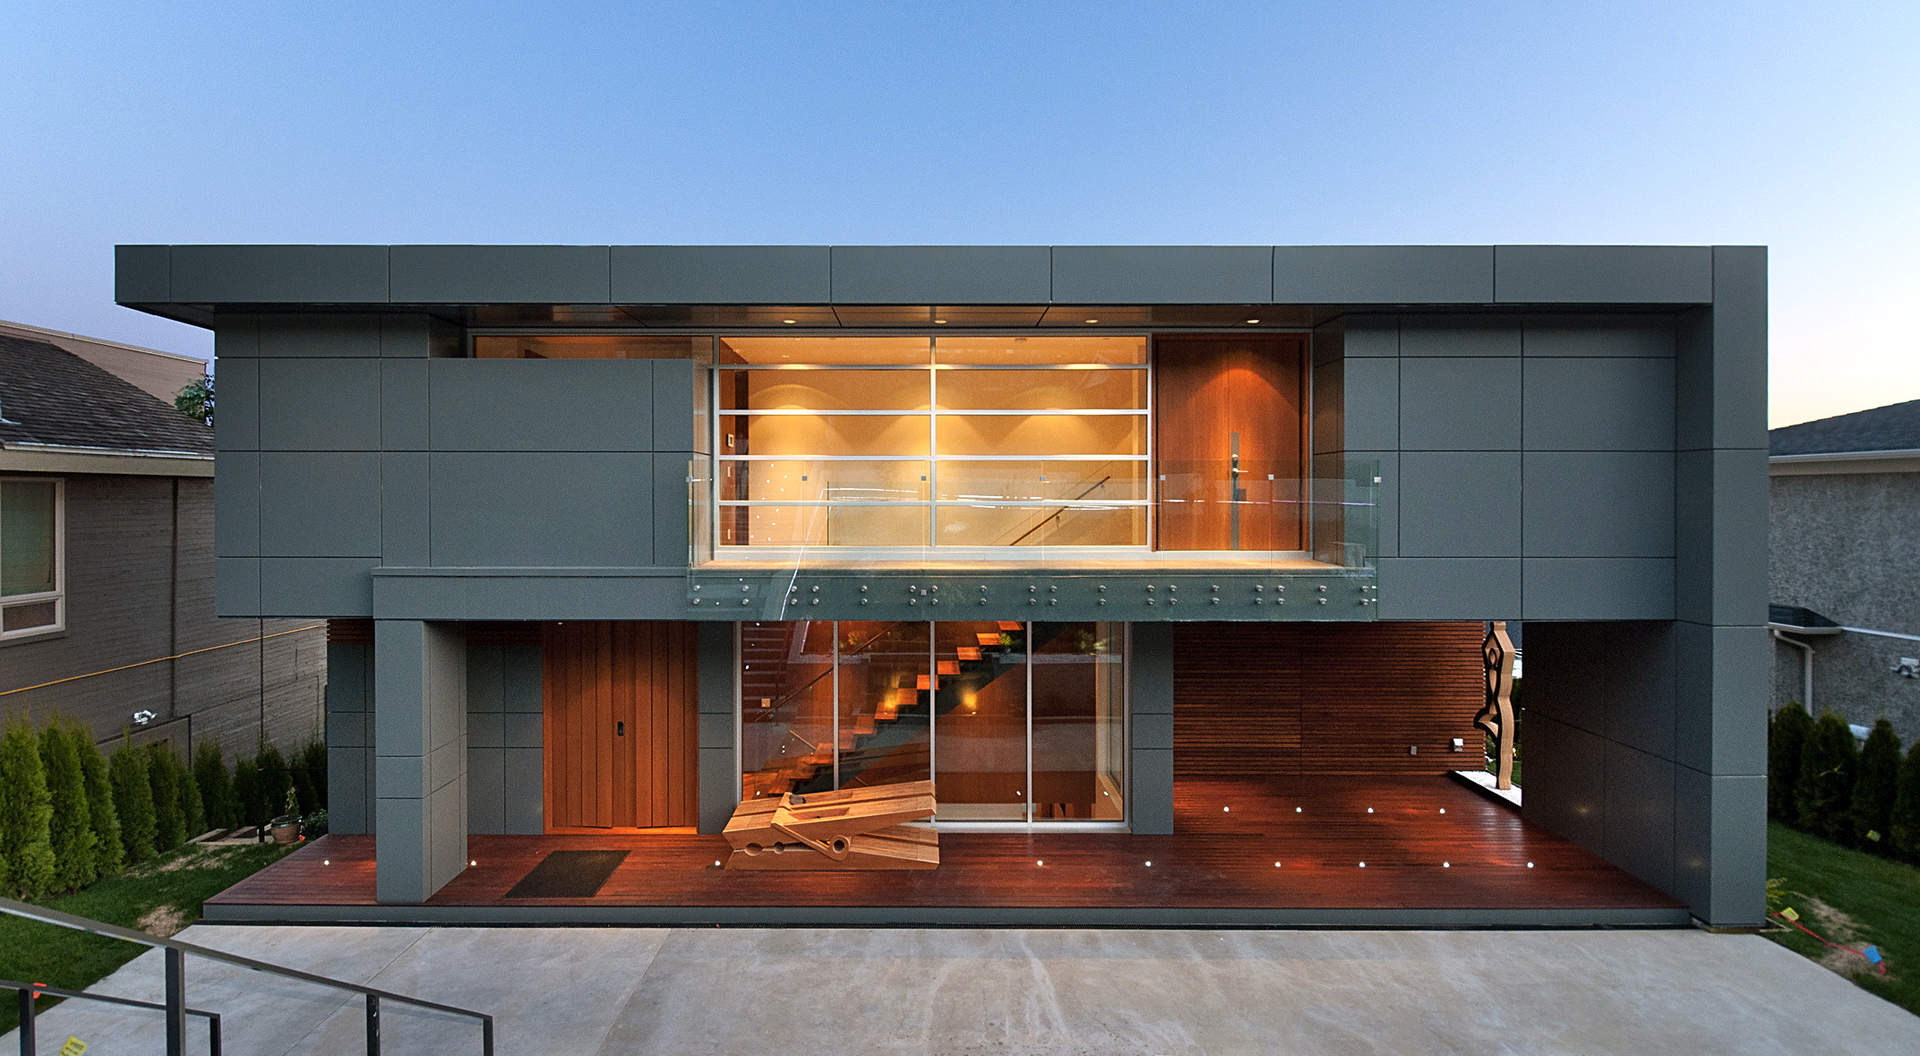 Architecturally Designed by Mehran Mansouri